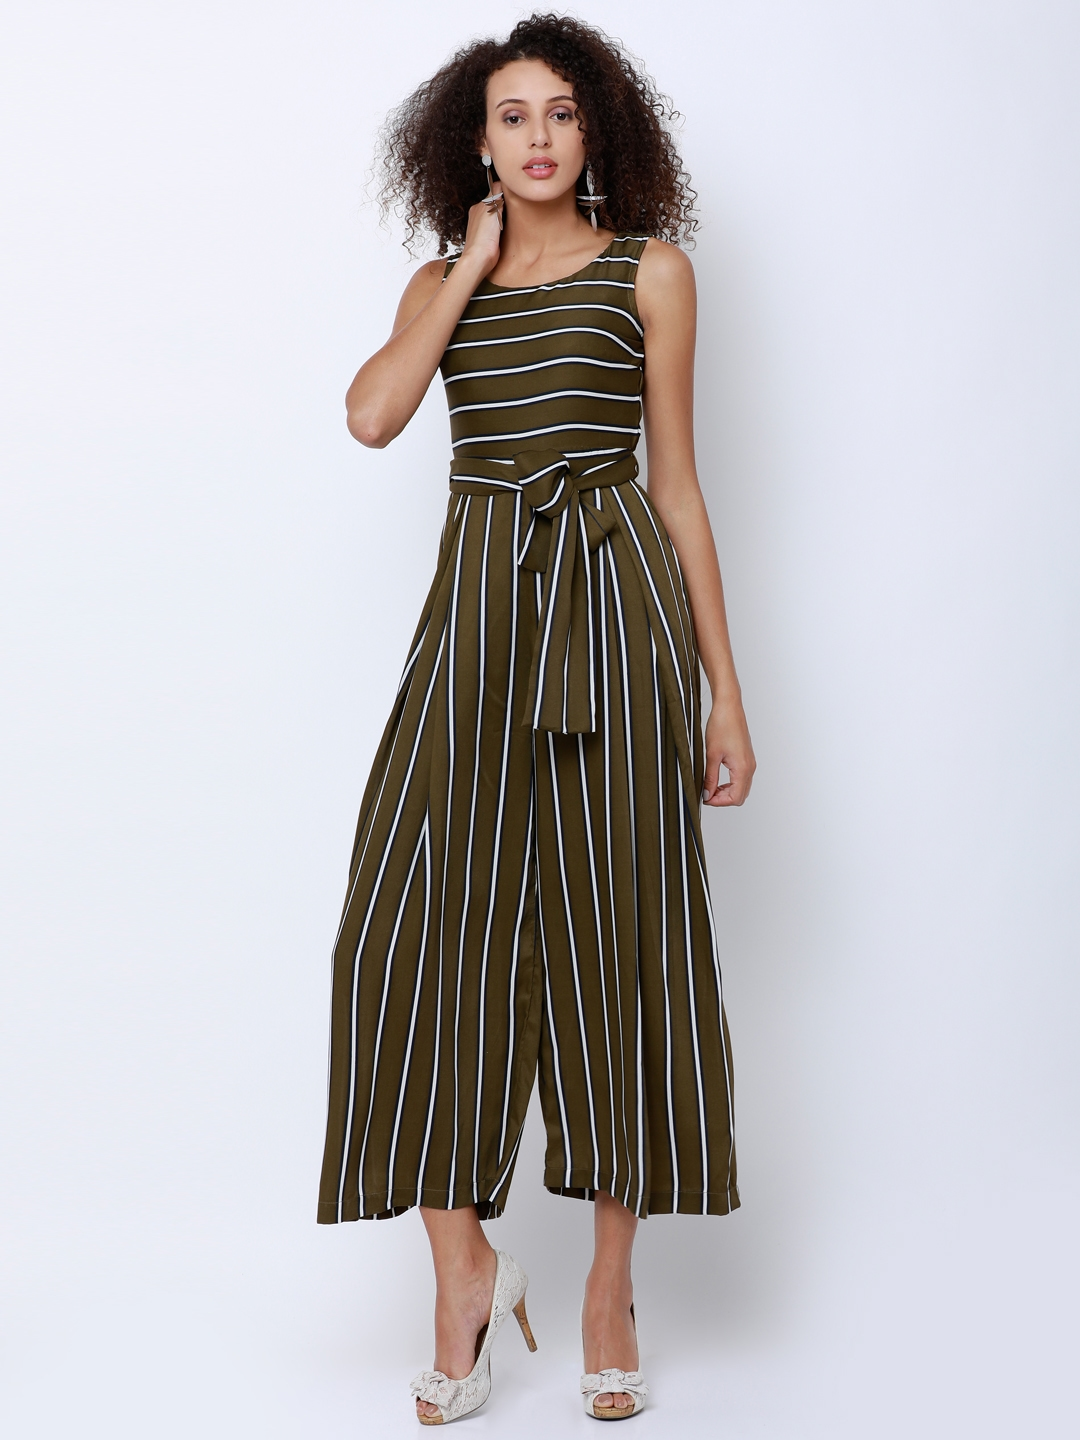 fdc67f36eed Buy Tokyo Talkies Olive Green   White Striped Culotte Jumpsuit ...